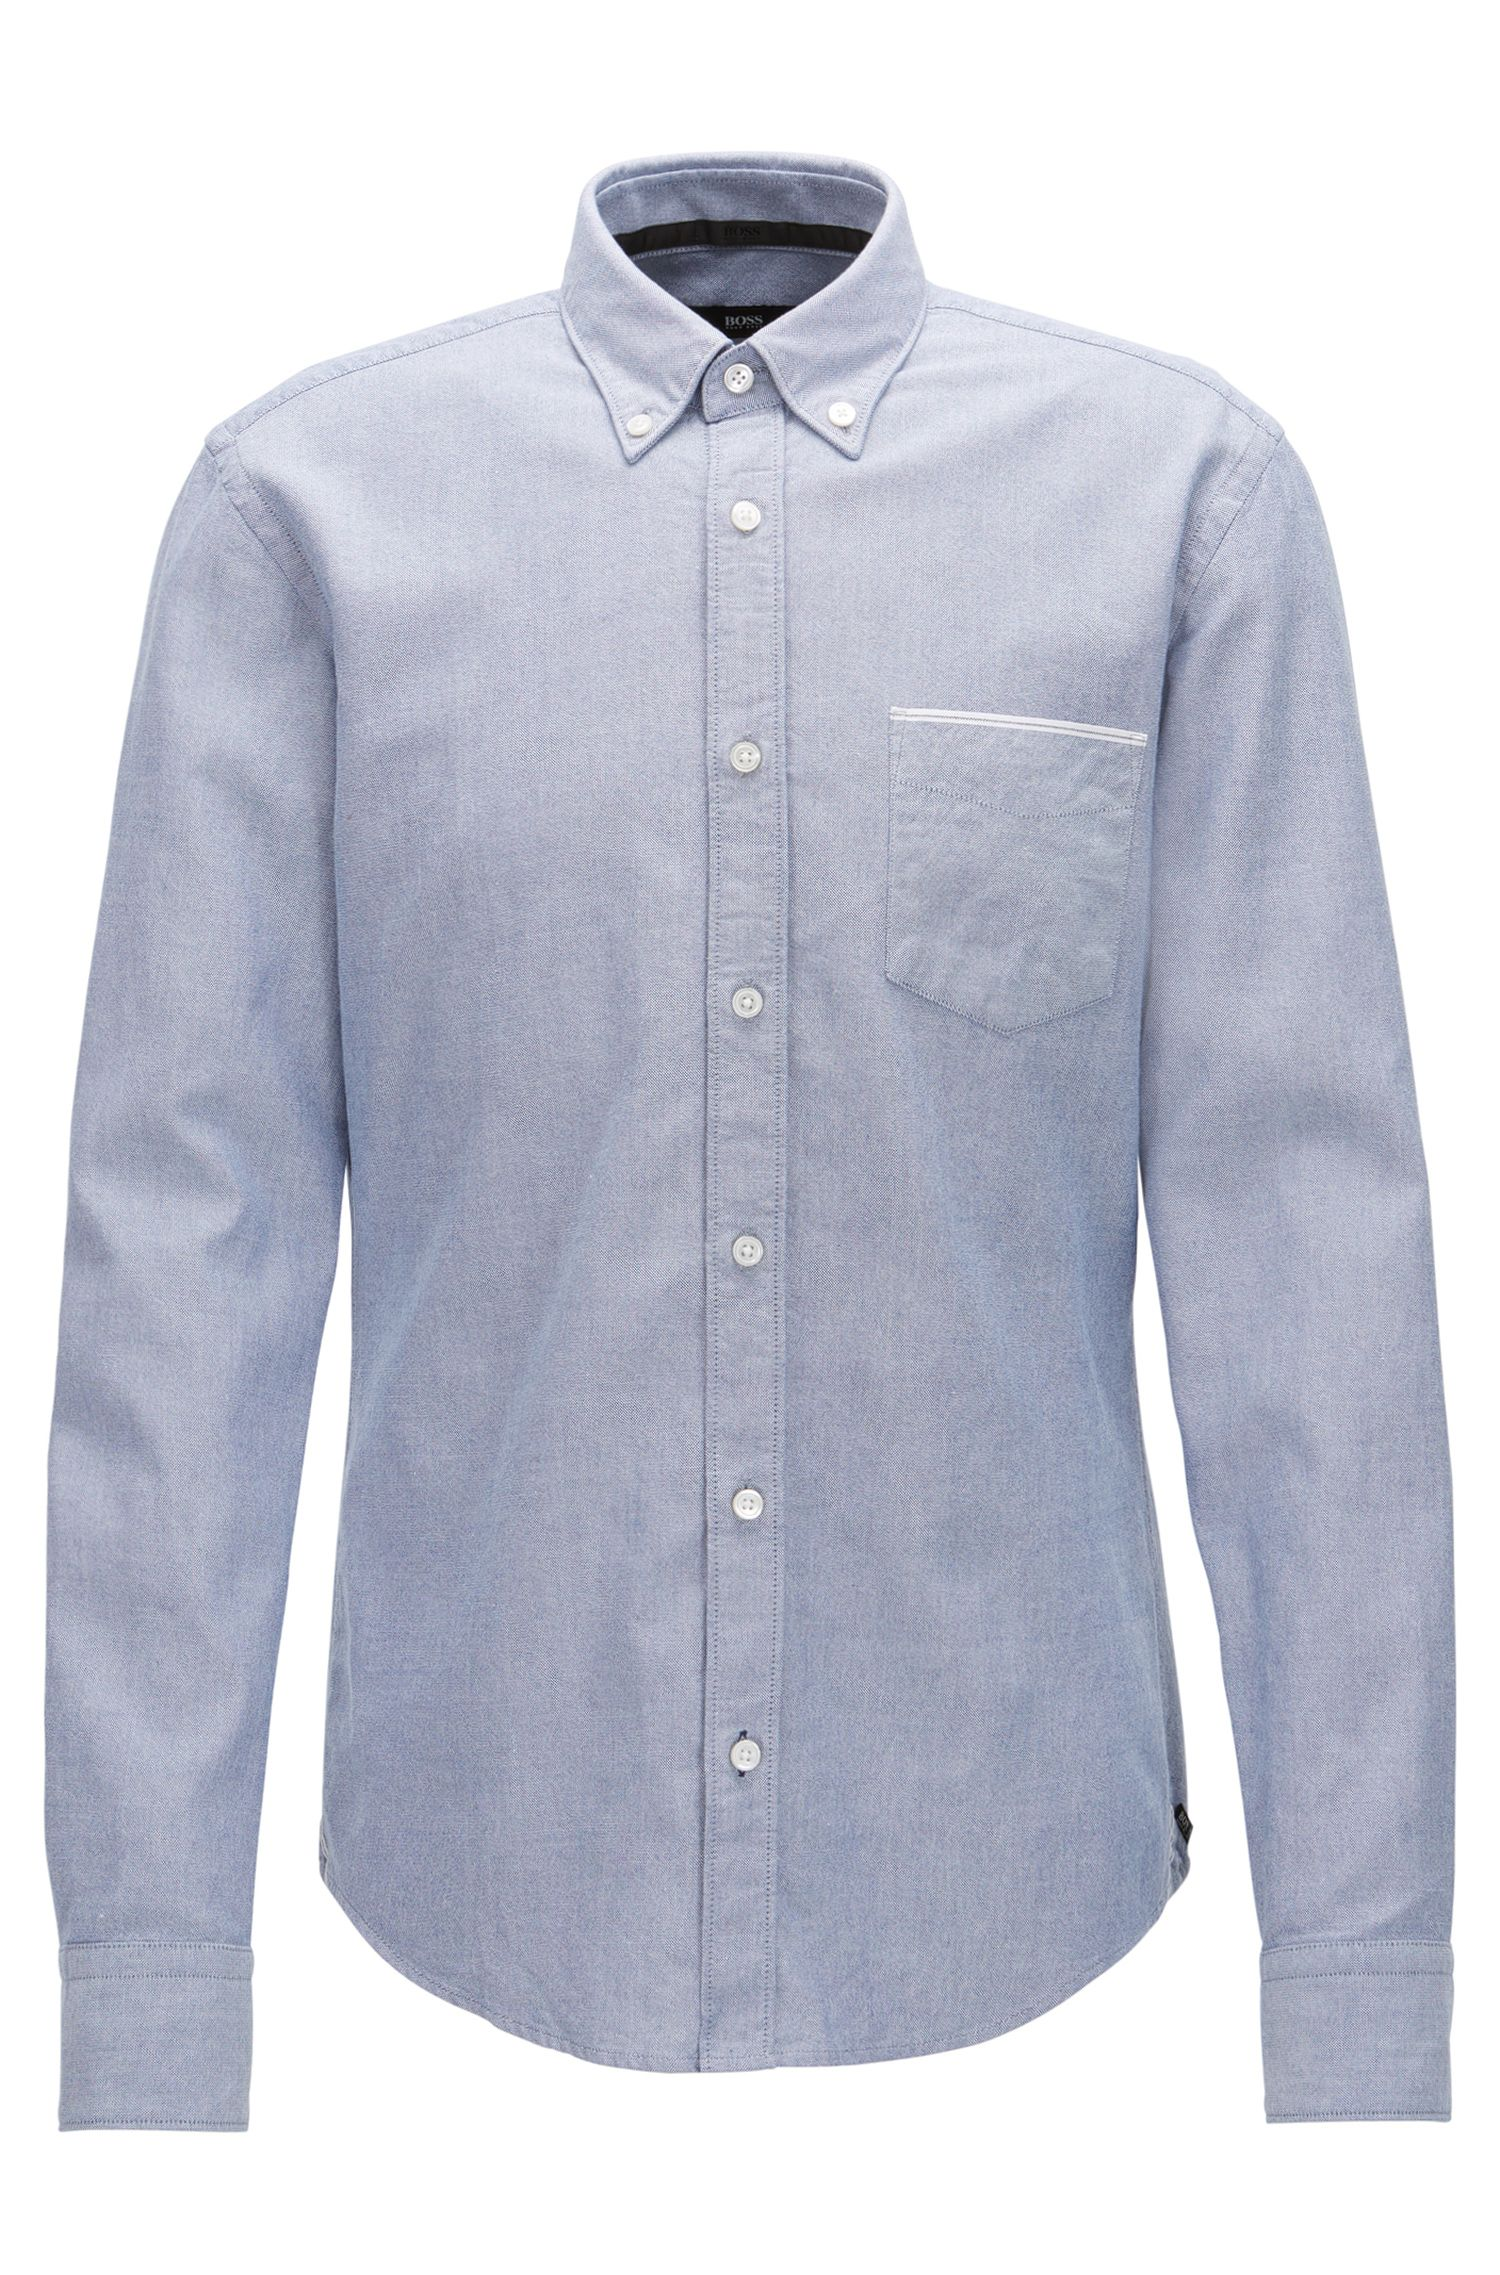 Slim-fit cotton Oxford shirt with selvedge details